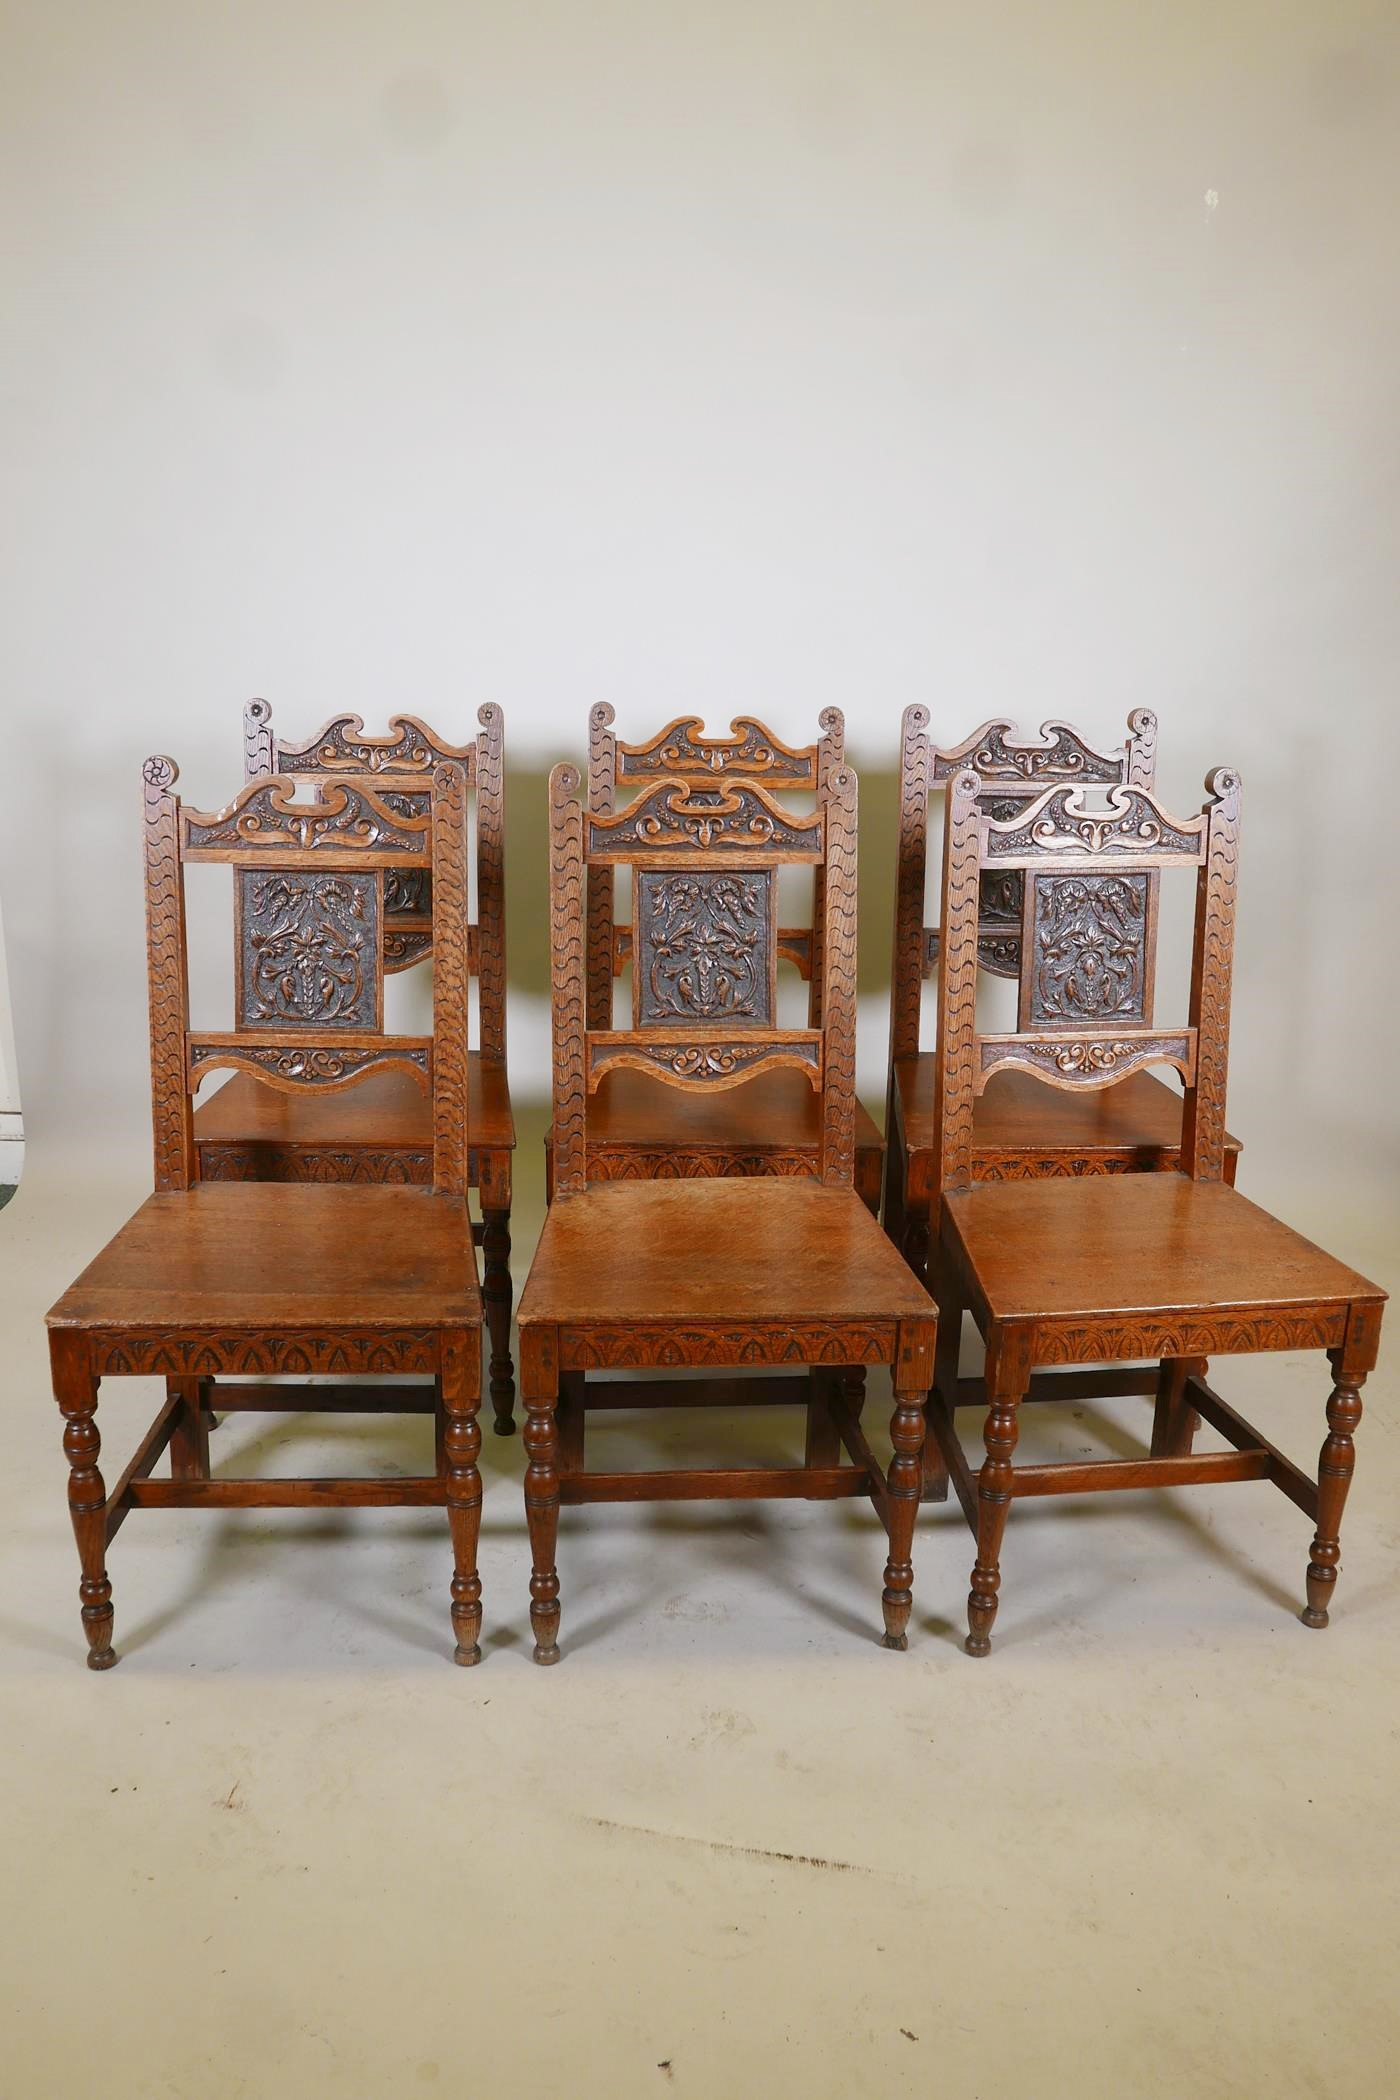 A set of six oak dining chairs with carved backs